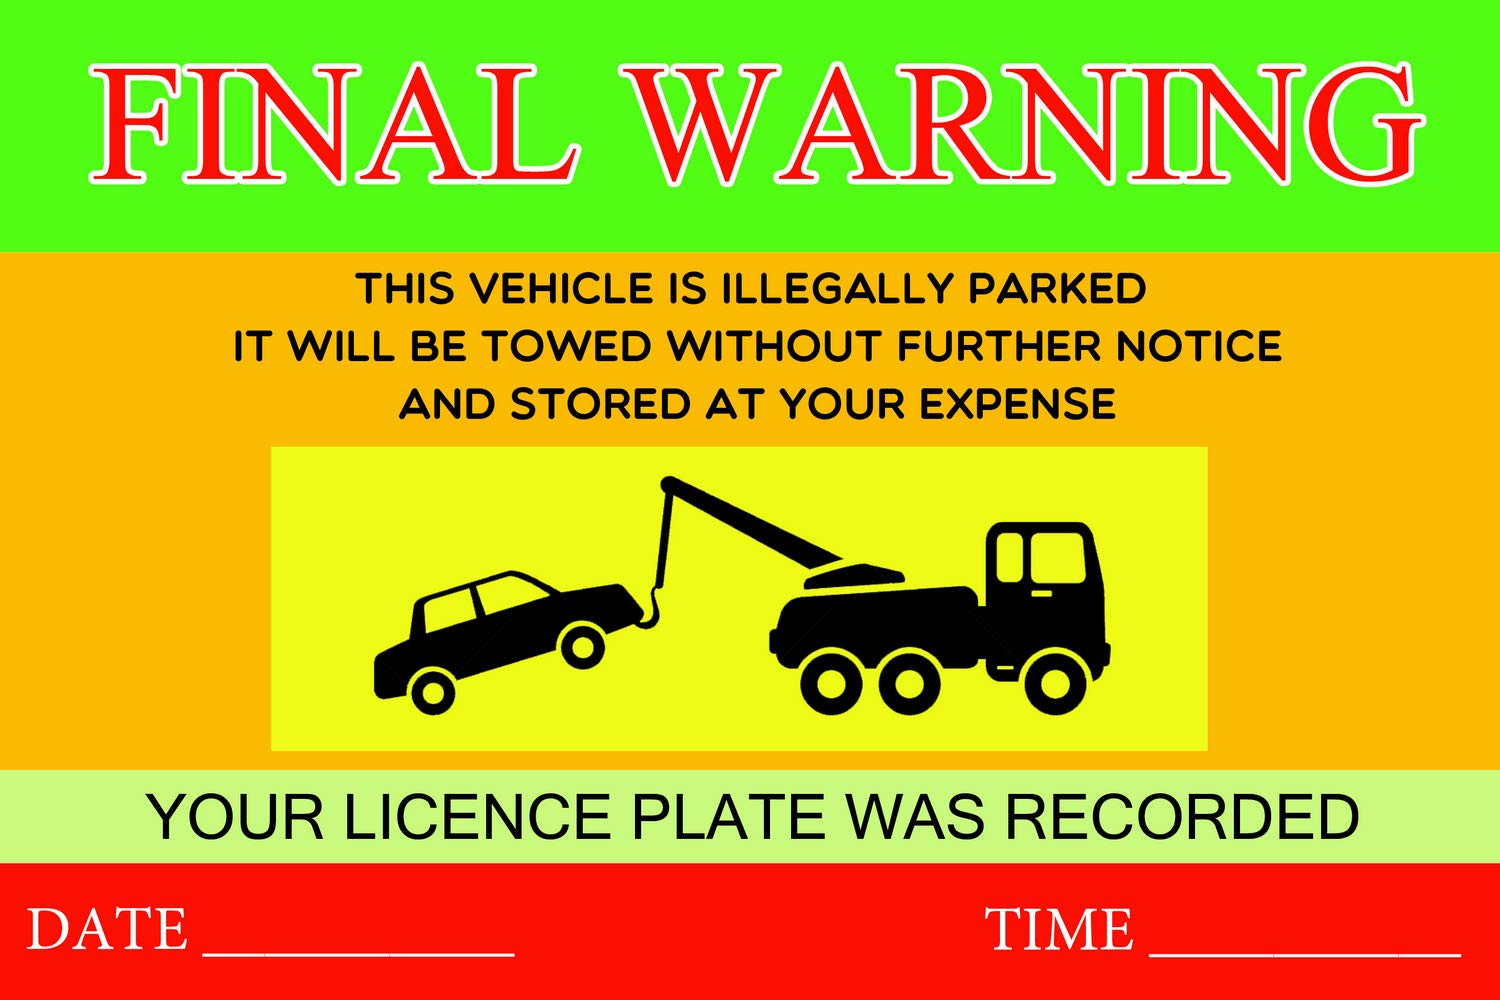 Private Parking Stickers Reserved No Permit Area Violation Warning Notice Label Sticker - 9x6 Inch - Pack of 500, Yellow by PrintValue